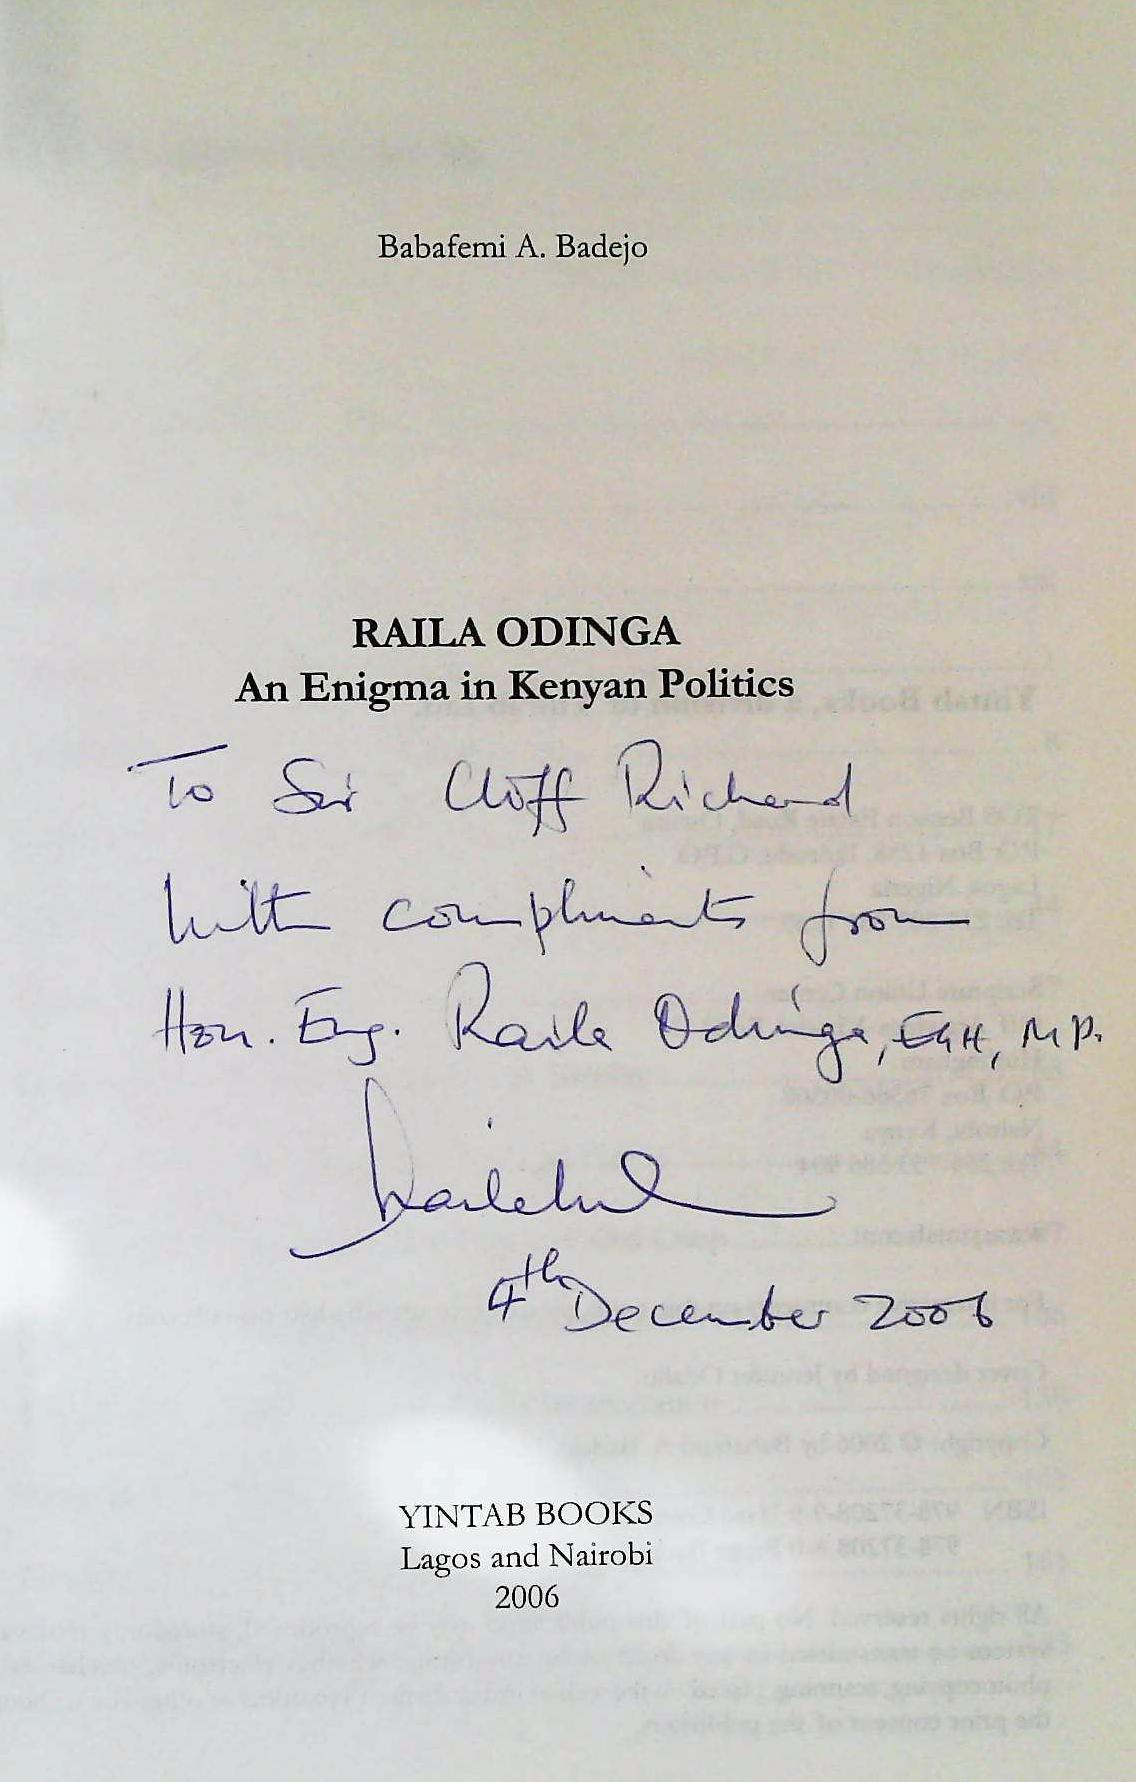 Raila Odinga An Enigma in Kenyan Politics by Babafemi A. Badejo softback book 367 pages signed and - Image 3 of 4